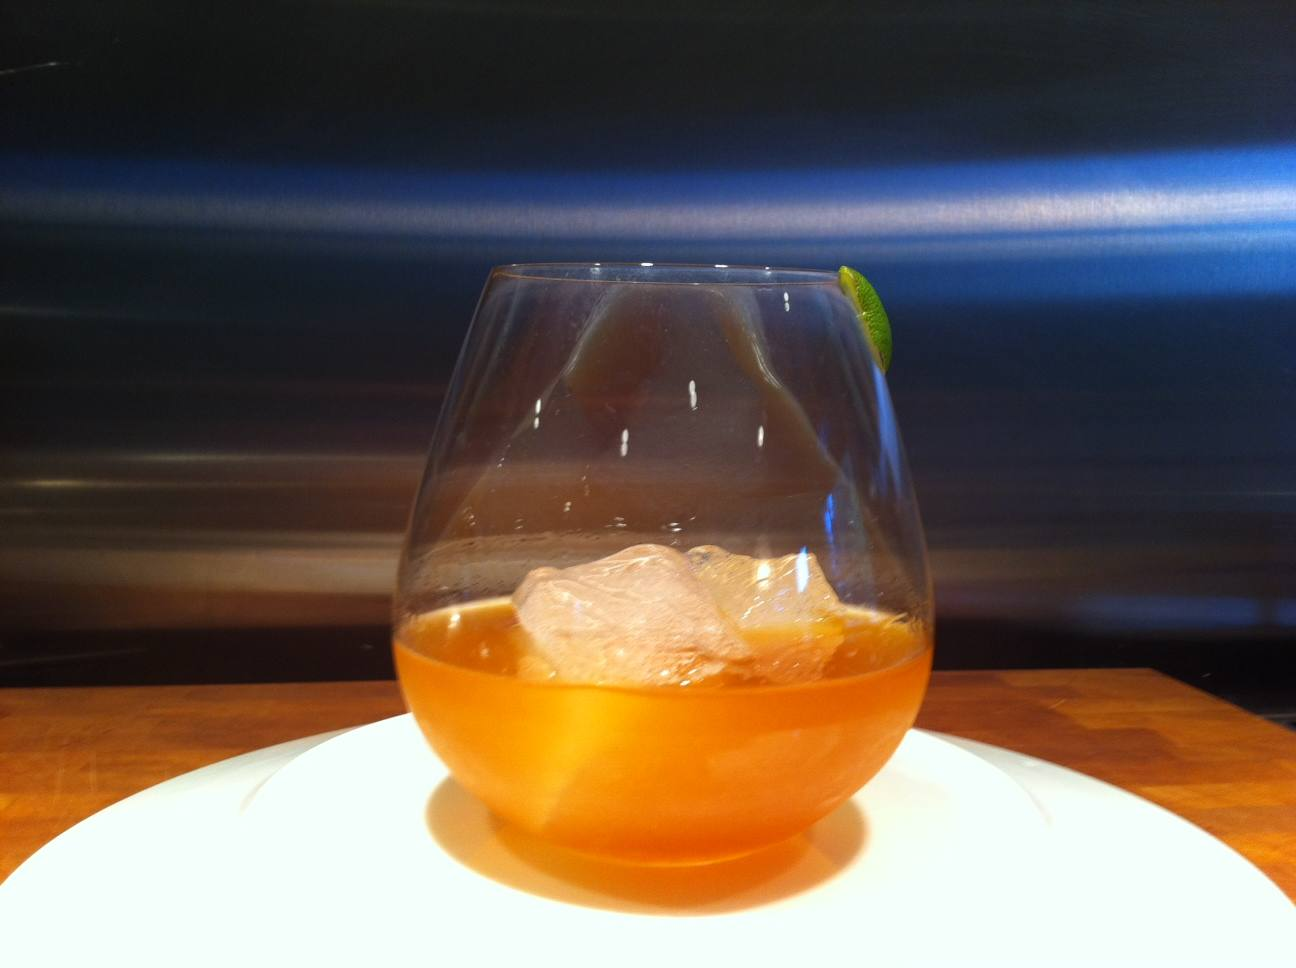 Ti' Punch: This week's cocktail « Putney Farm